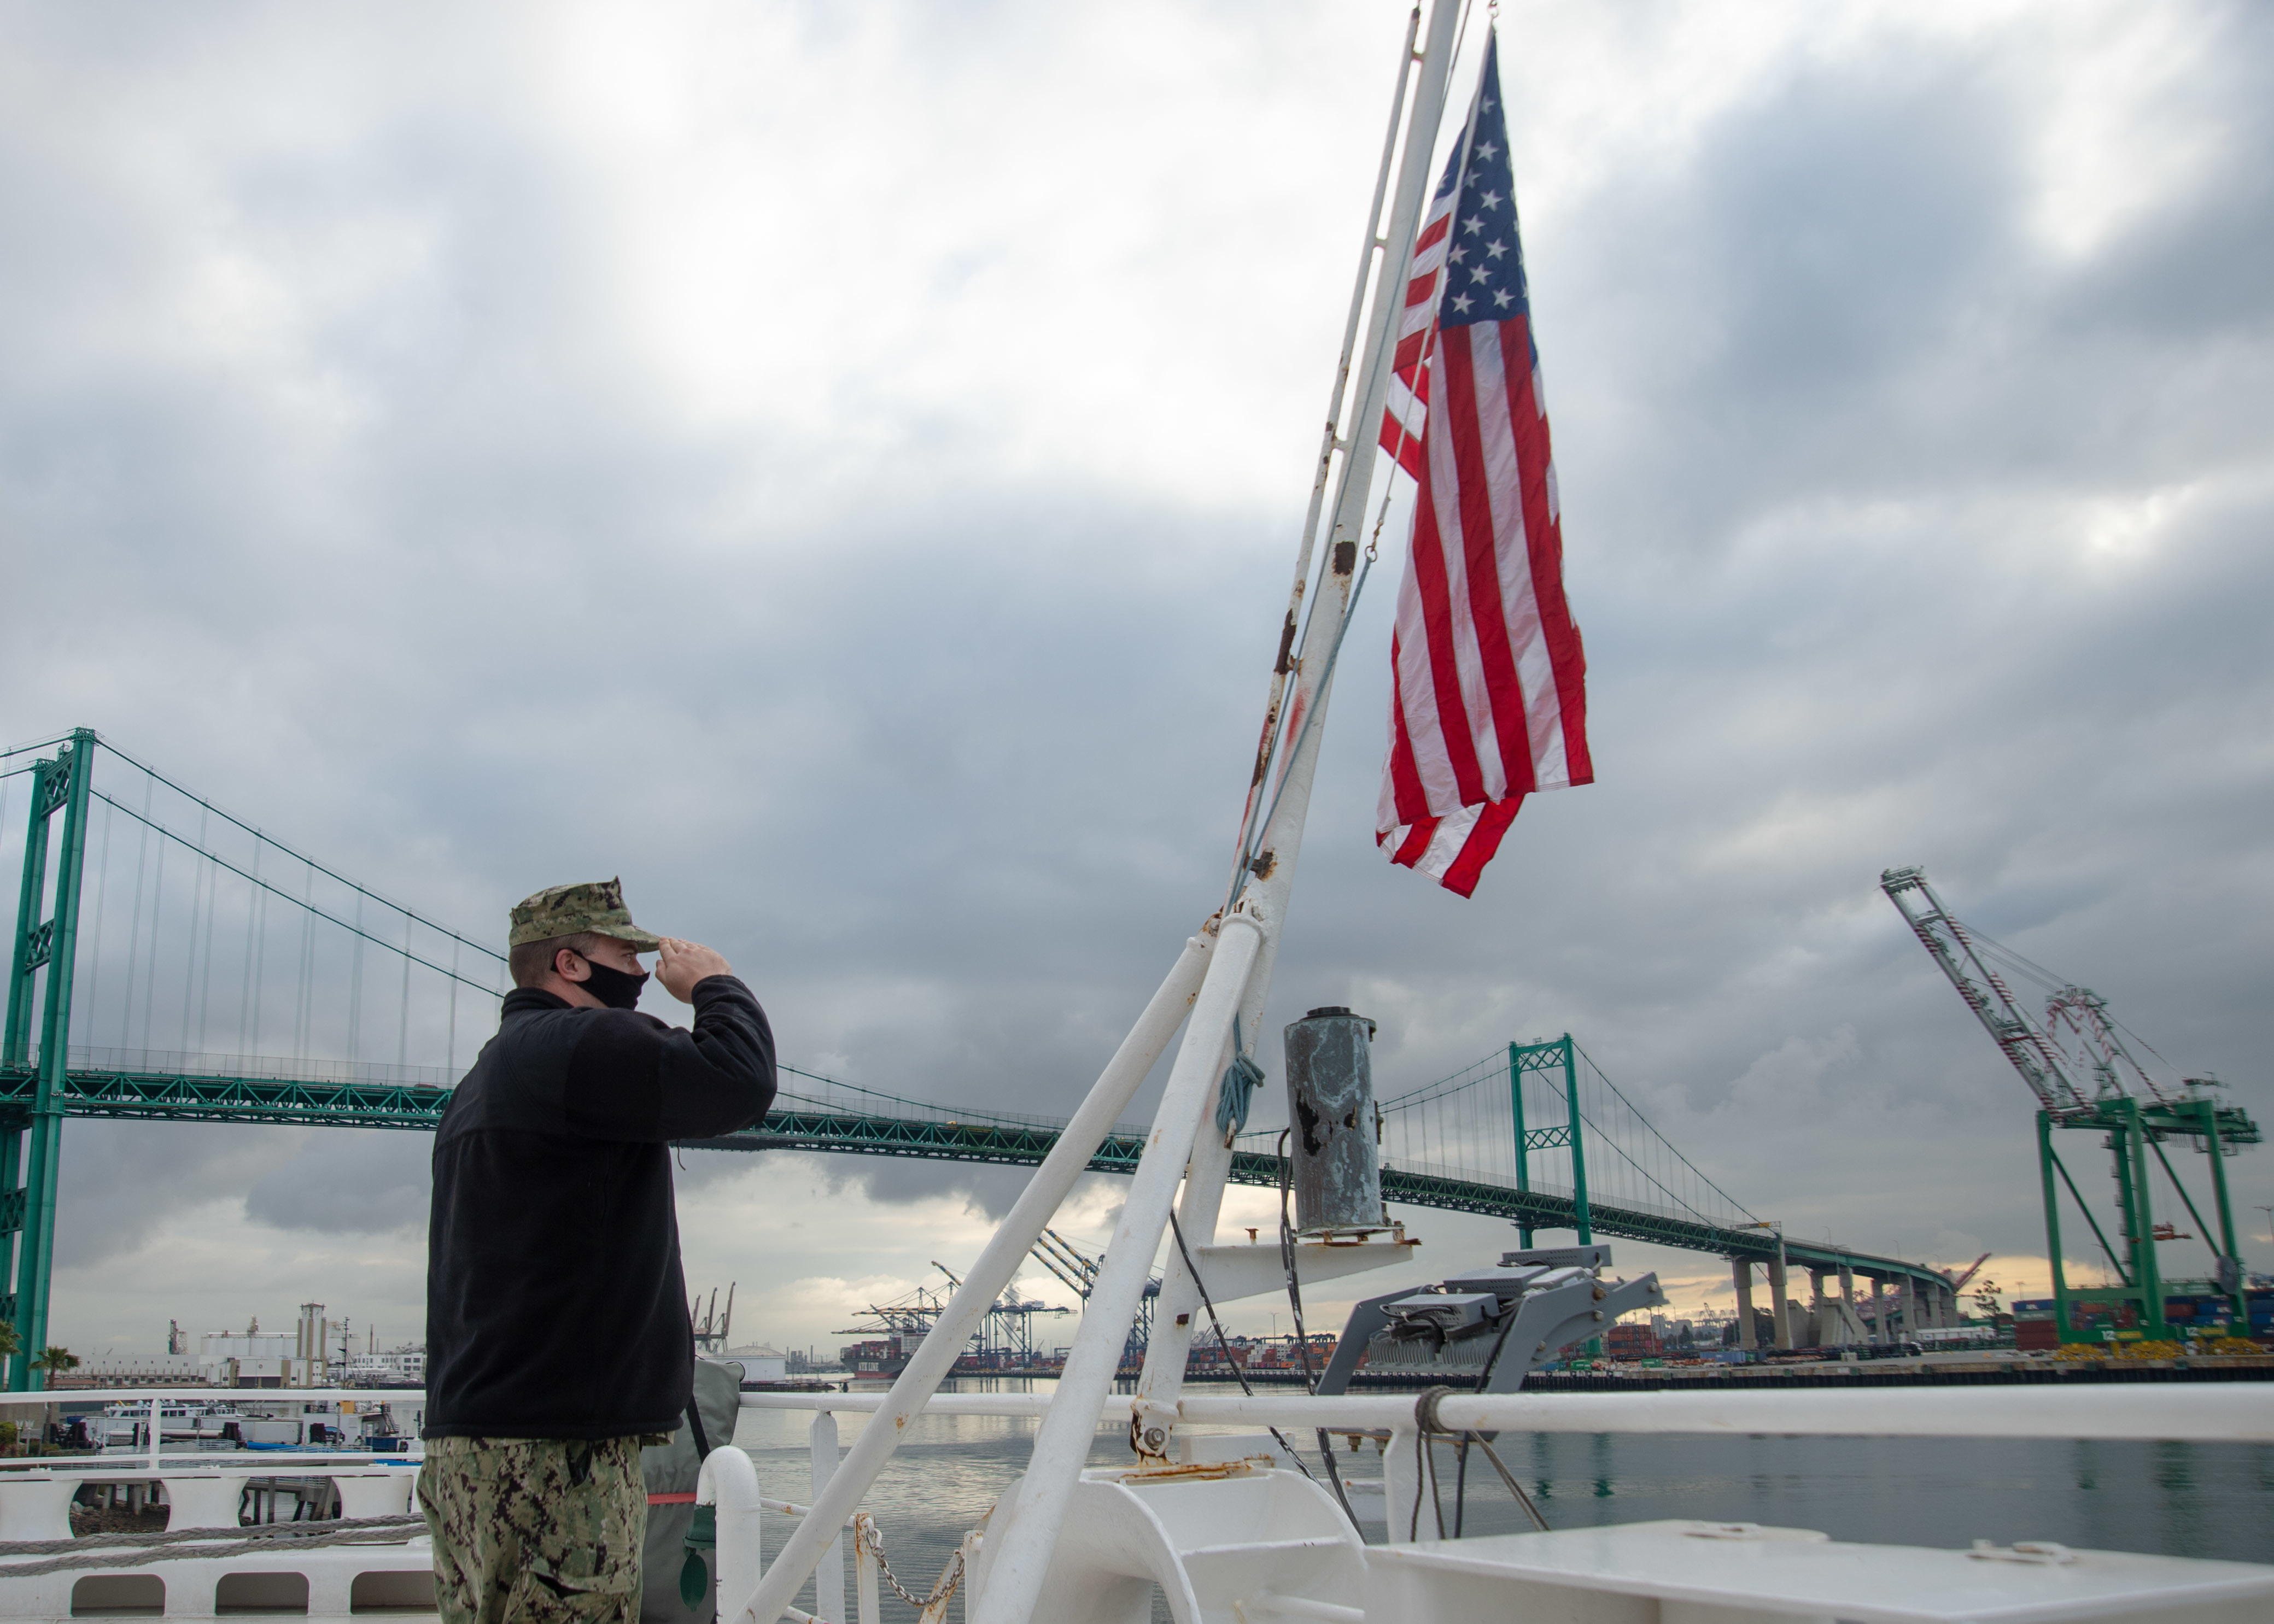 Caption: Sailor John Arkulary from Marshfield, Wis. salutes the flag aboard the hospital ship USNS Mercy in Los Angeles April 13., Credit: Luke Cunningham / U.S. Navy